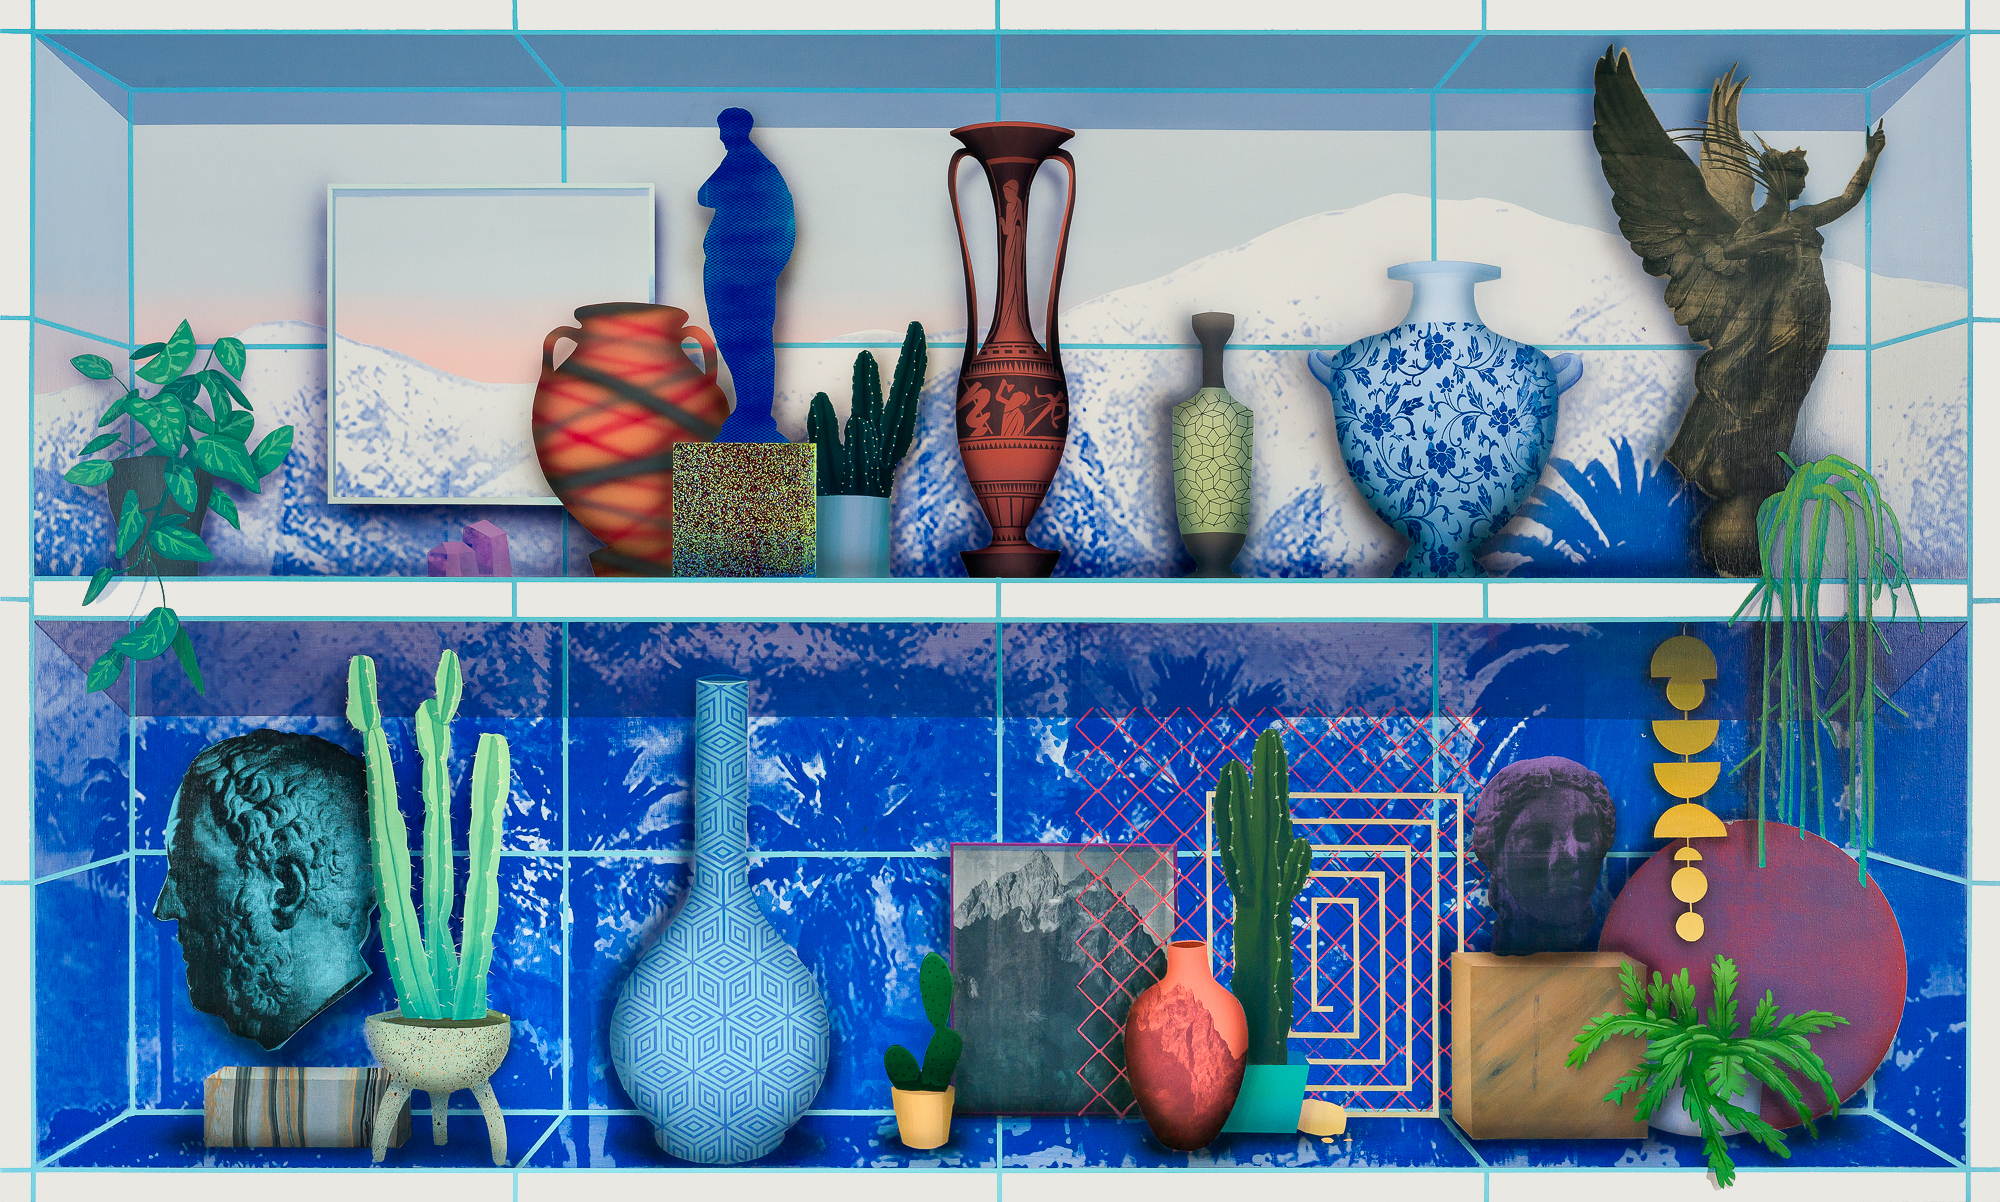 Many vases and small figurines on shelves with a blue printed mountain range in the background